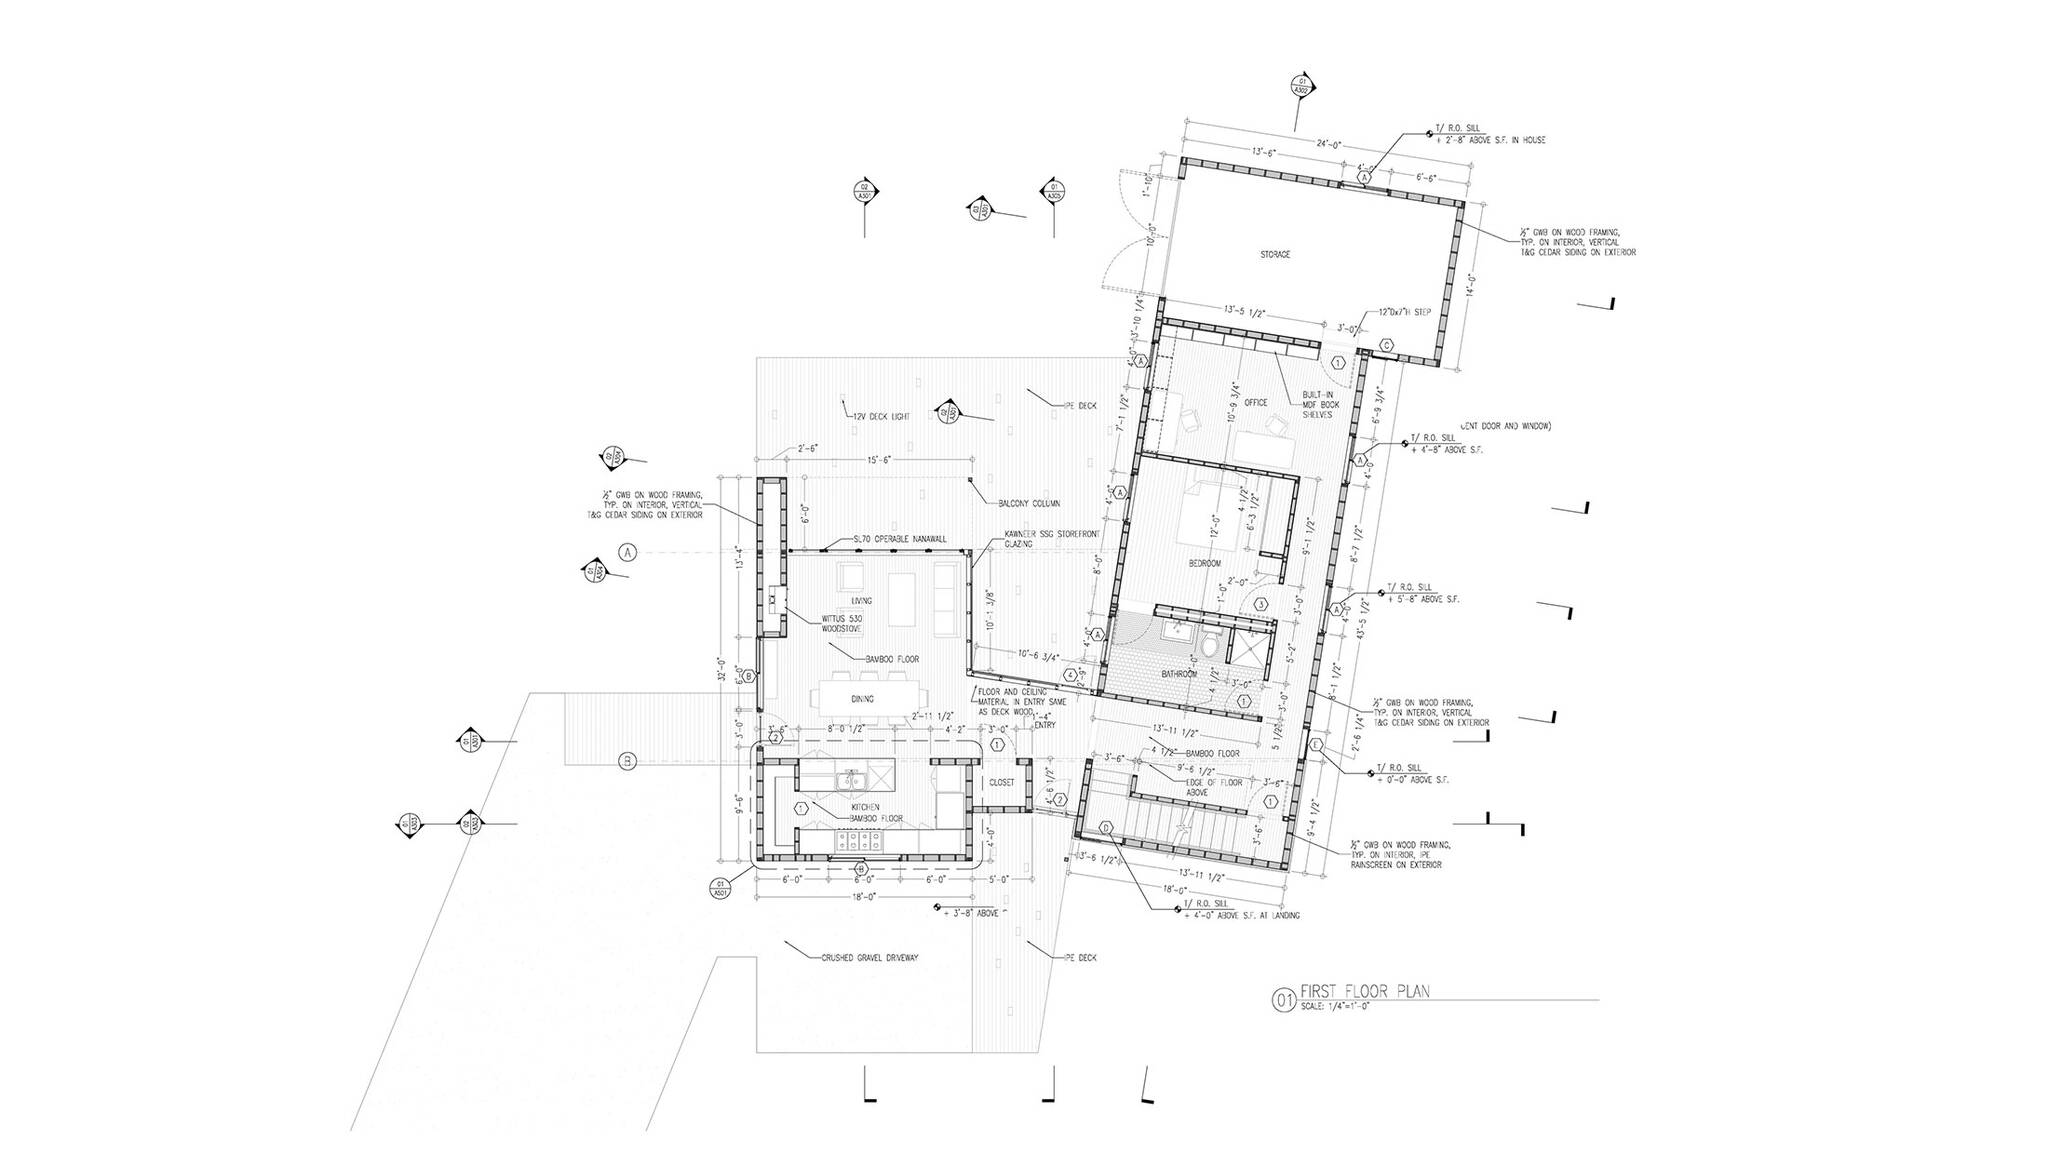 First floor plan of the sustainable lake house project in Omena, Michigan designed by the architecture studio Danny Forster & Architecture